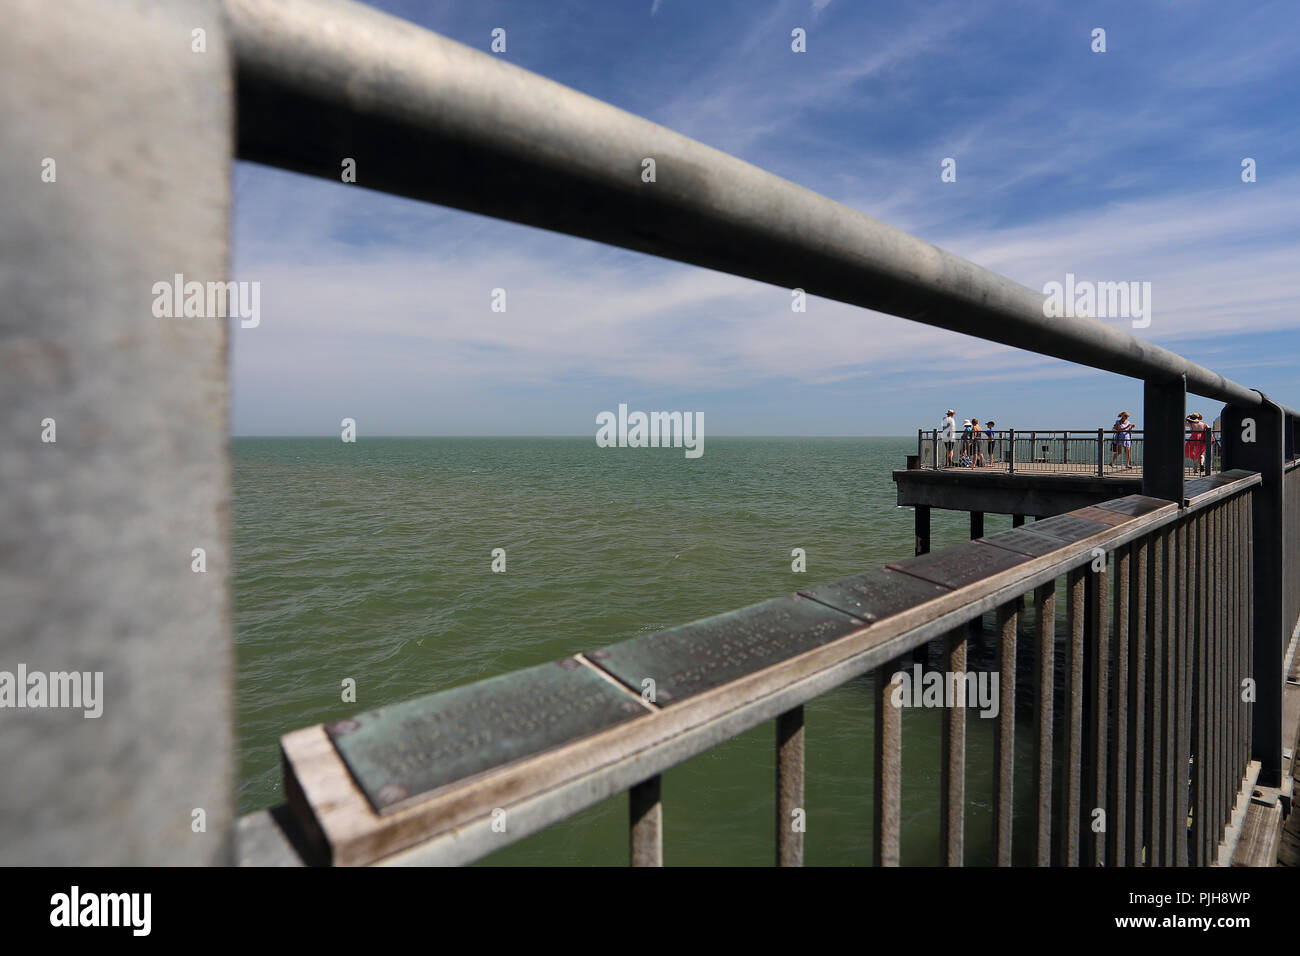 Looking out over the North Sea from the pier at Southwold, Suffolk UK. - Stock Image